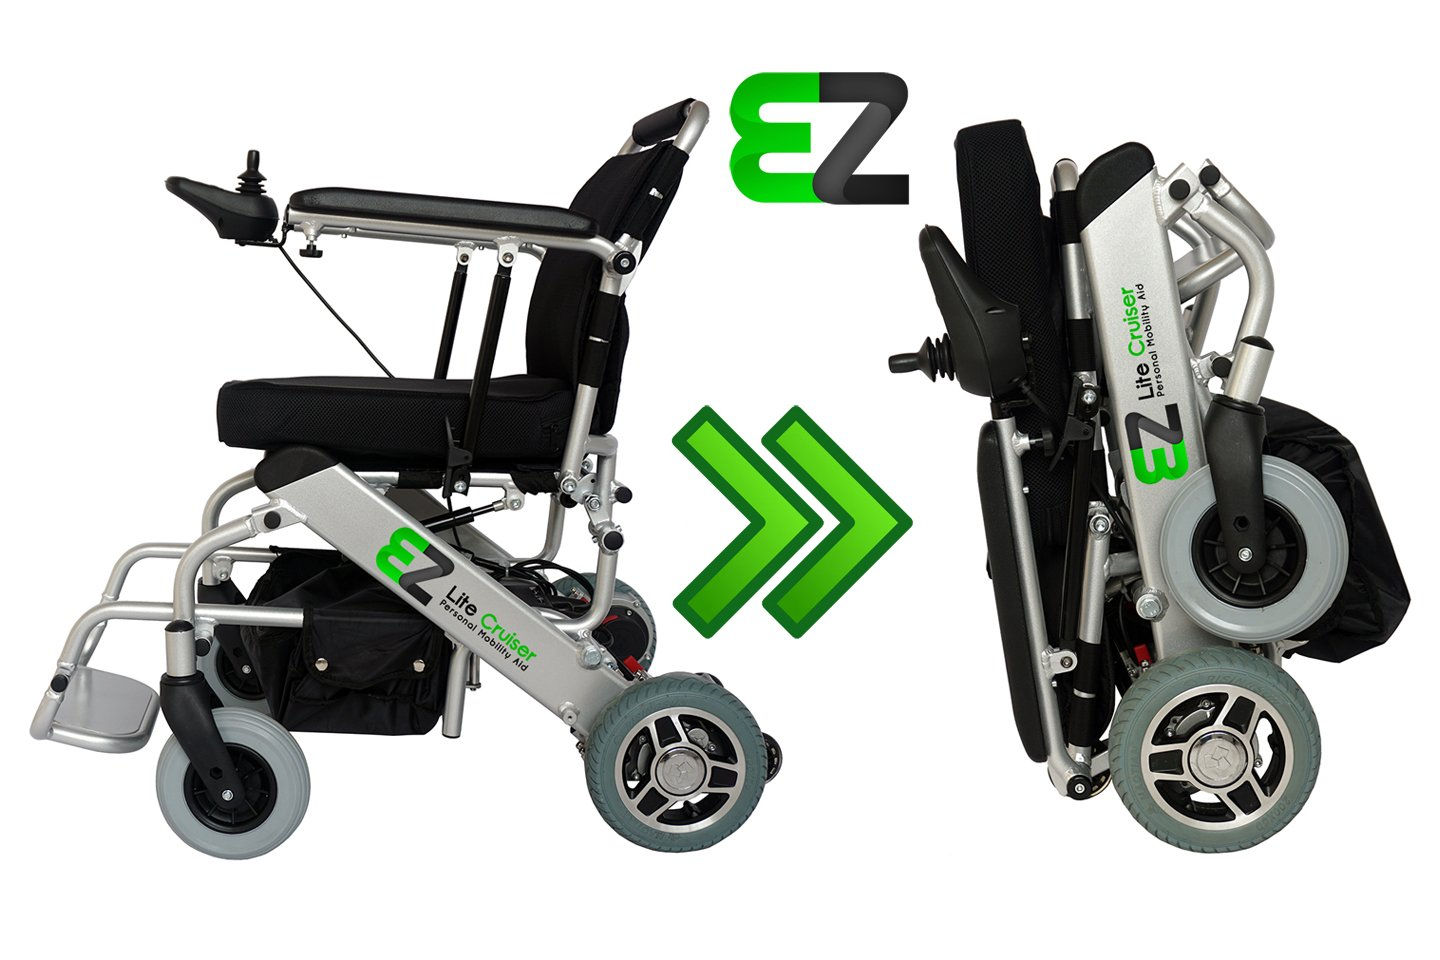 smallest and lightest foldable wheelchair for travelling